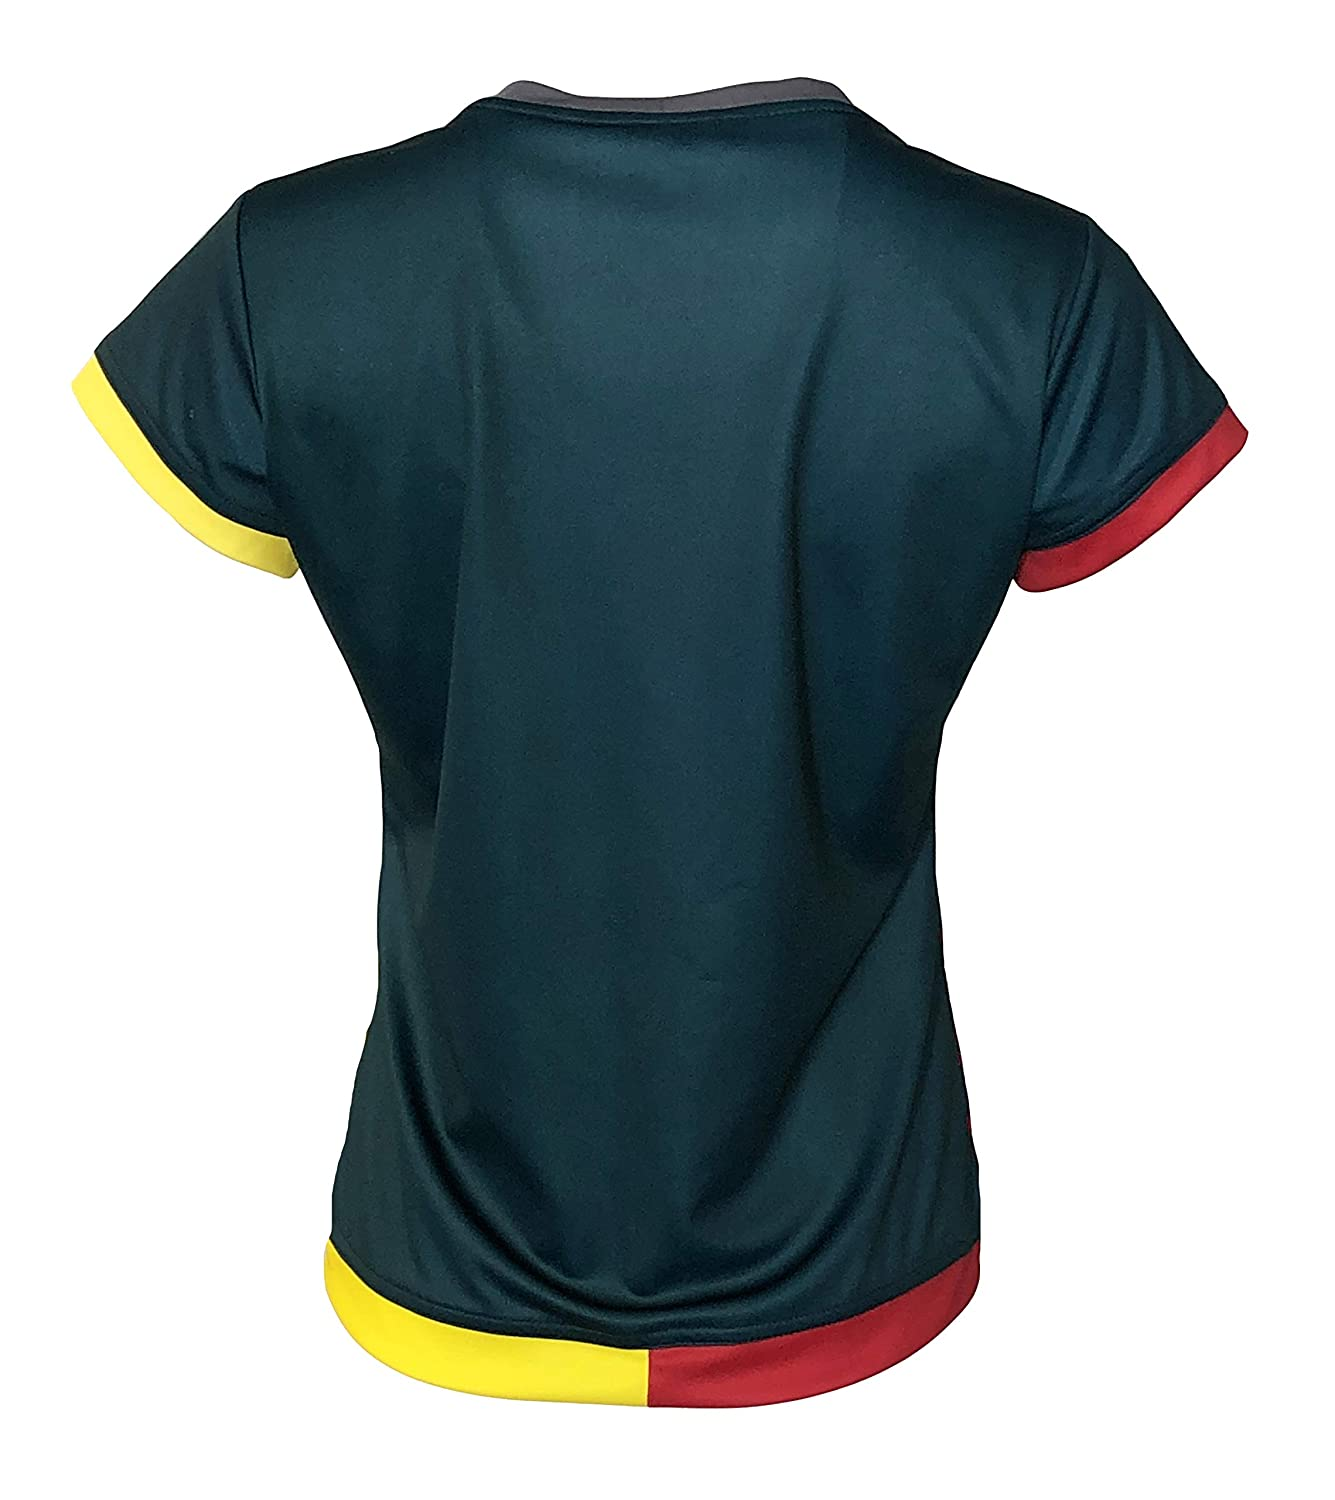 Arza New Women Cameroon Soccer Jersey Green 100/% Polyester/_Made in Mexico